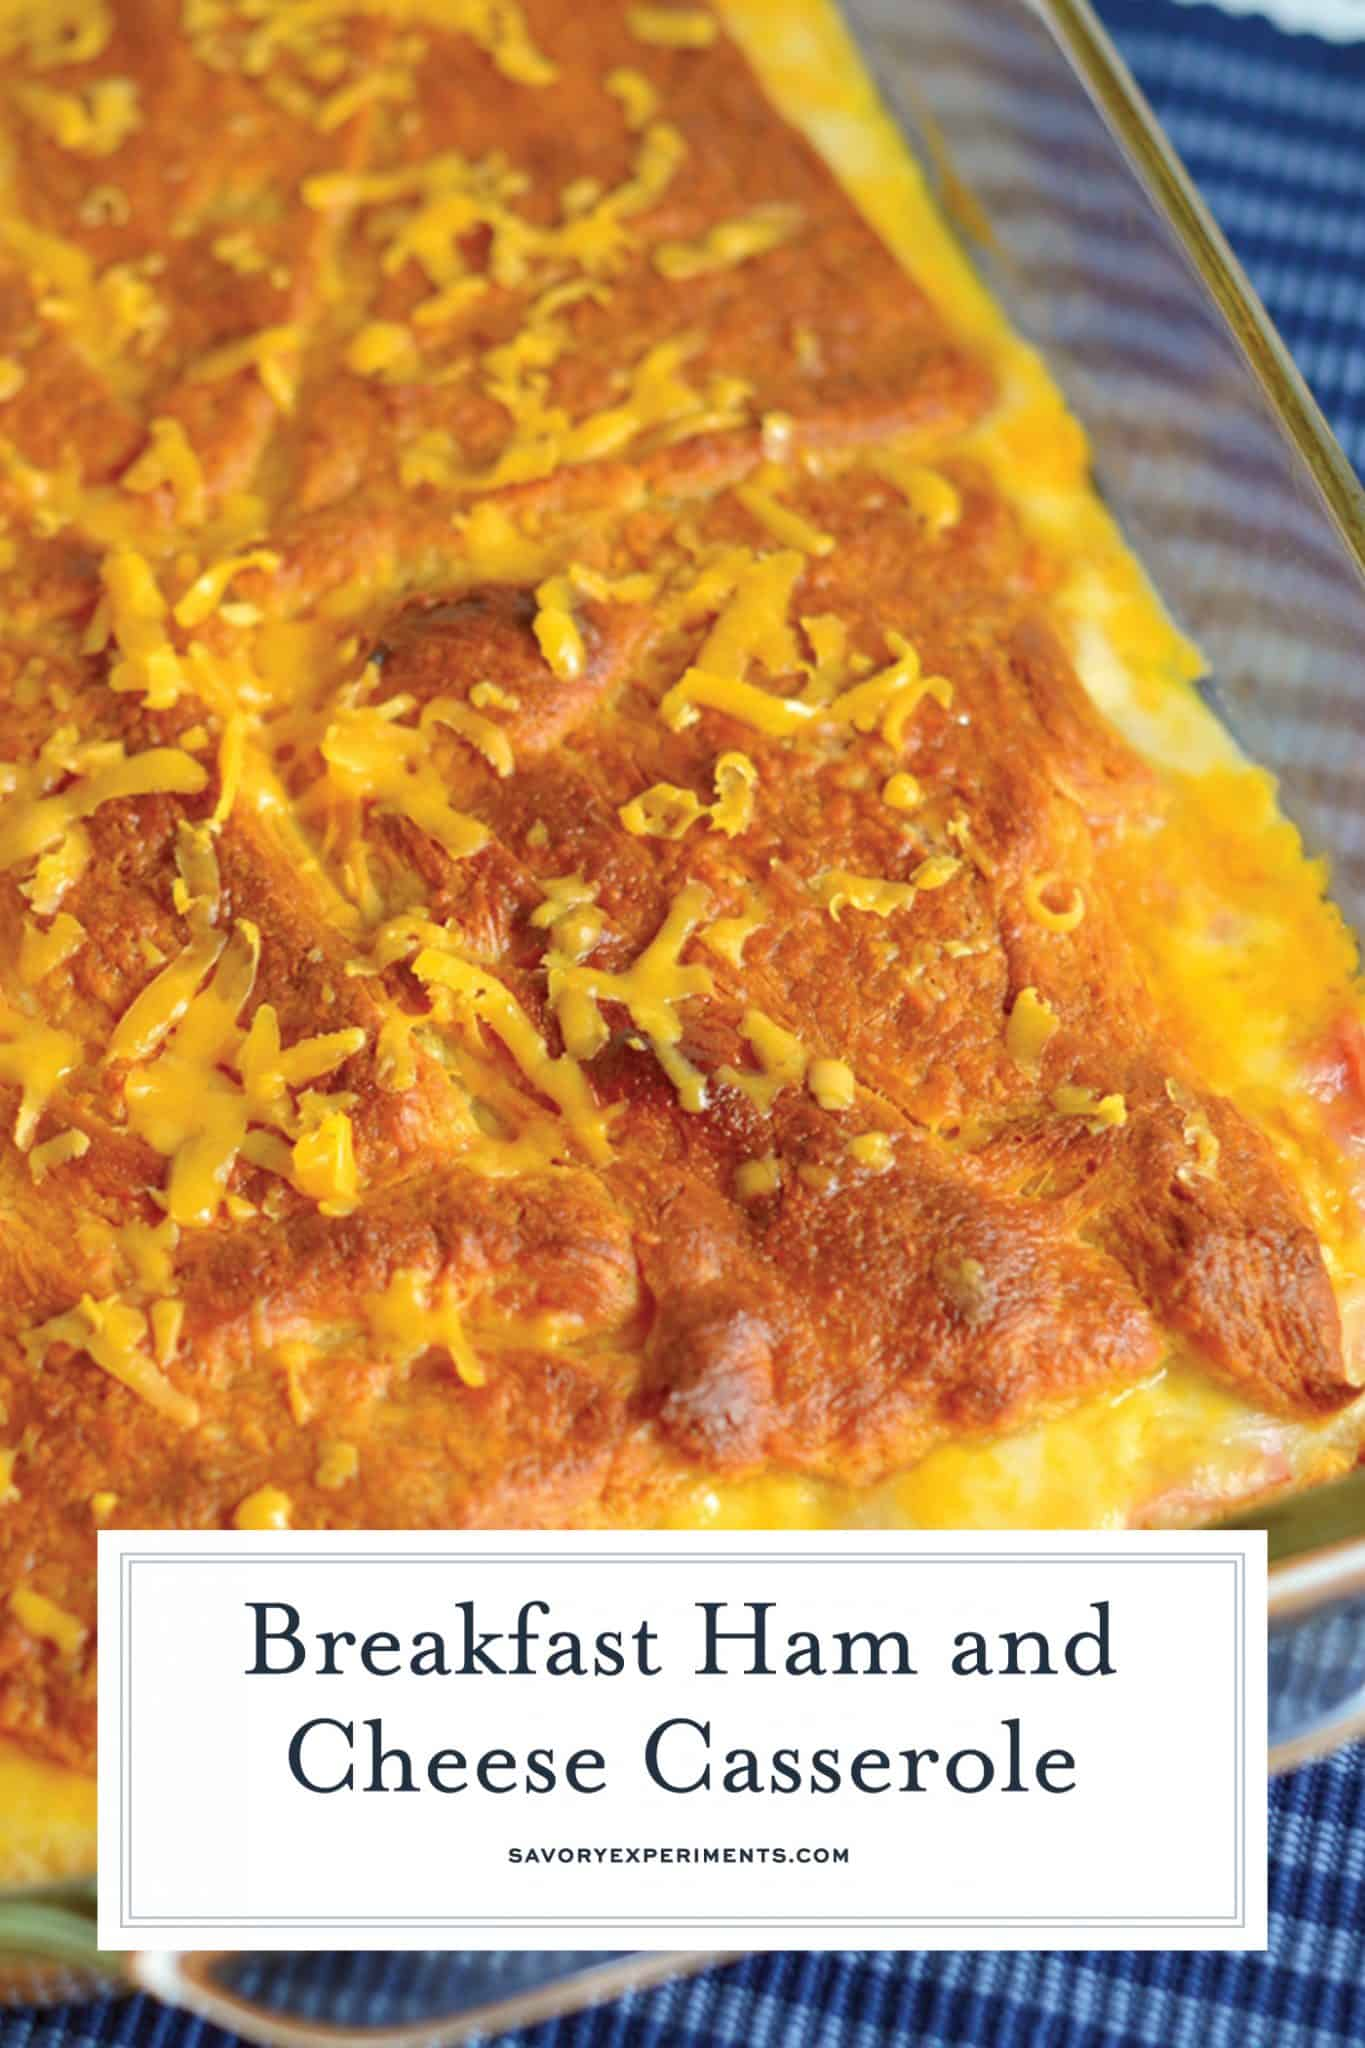 Looking for easy breakfast ideas? This Ham & Cheese Casserole Recipe is an eggless breakfast casserole recipe that uses only 3 ingredients & bakes up in a snap! #hamandcheesecasserole #easycasserolerecipes www.savoryexperiments.com